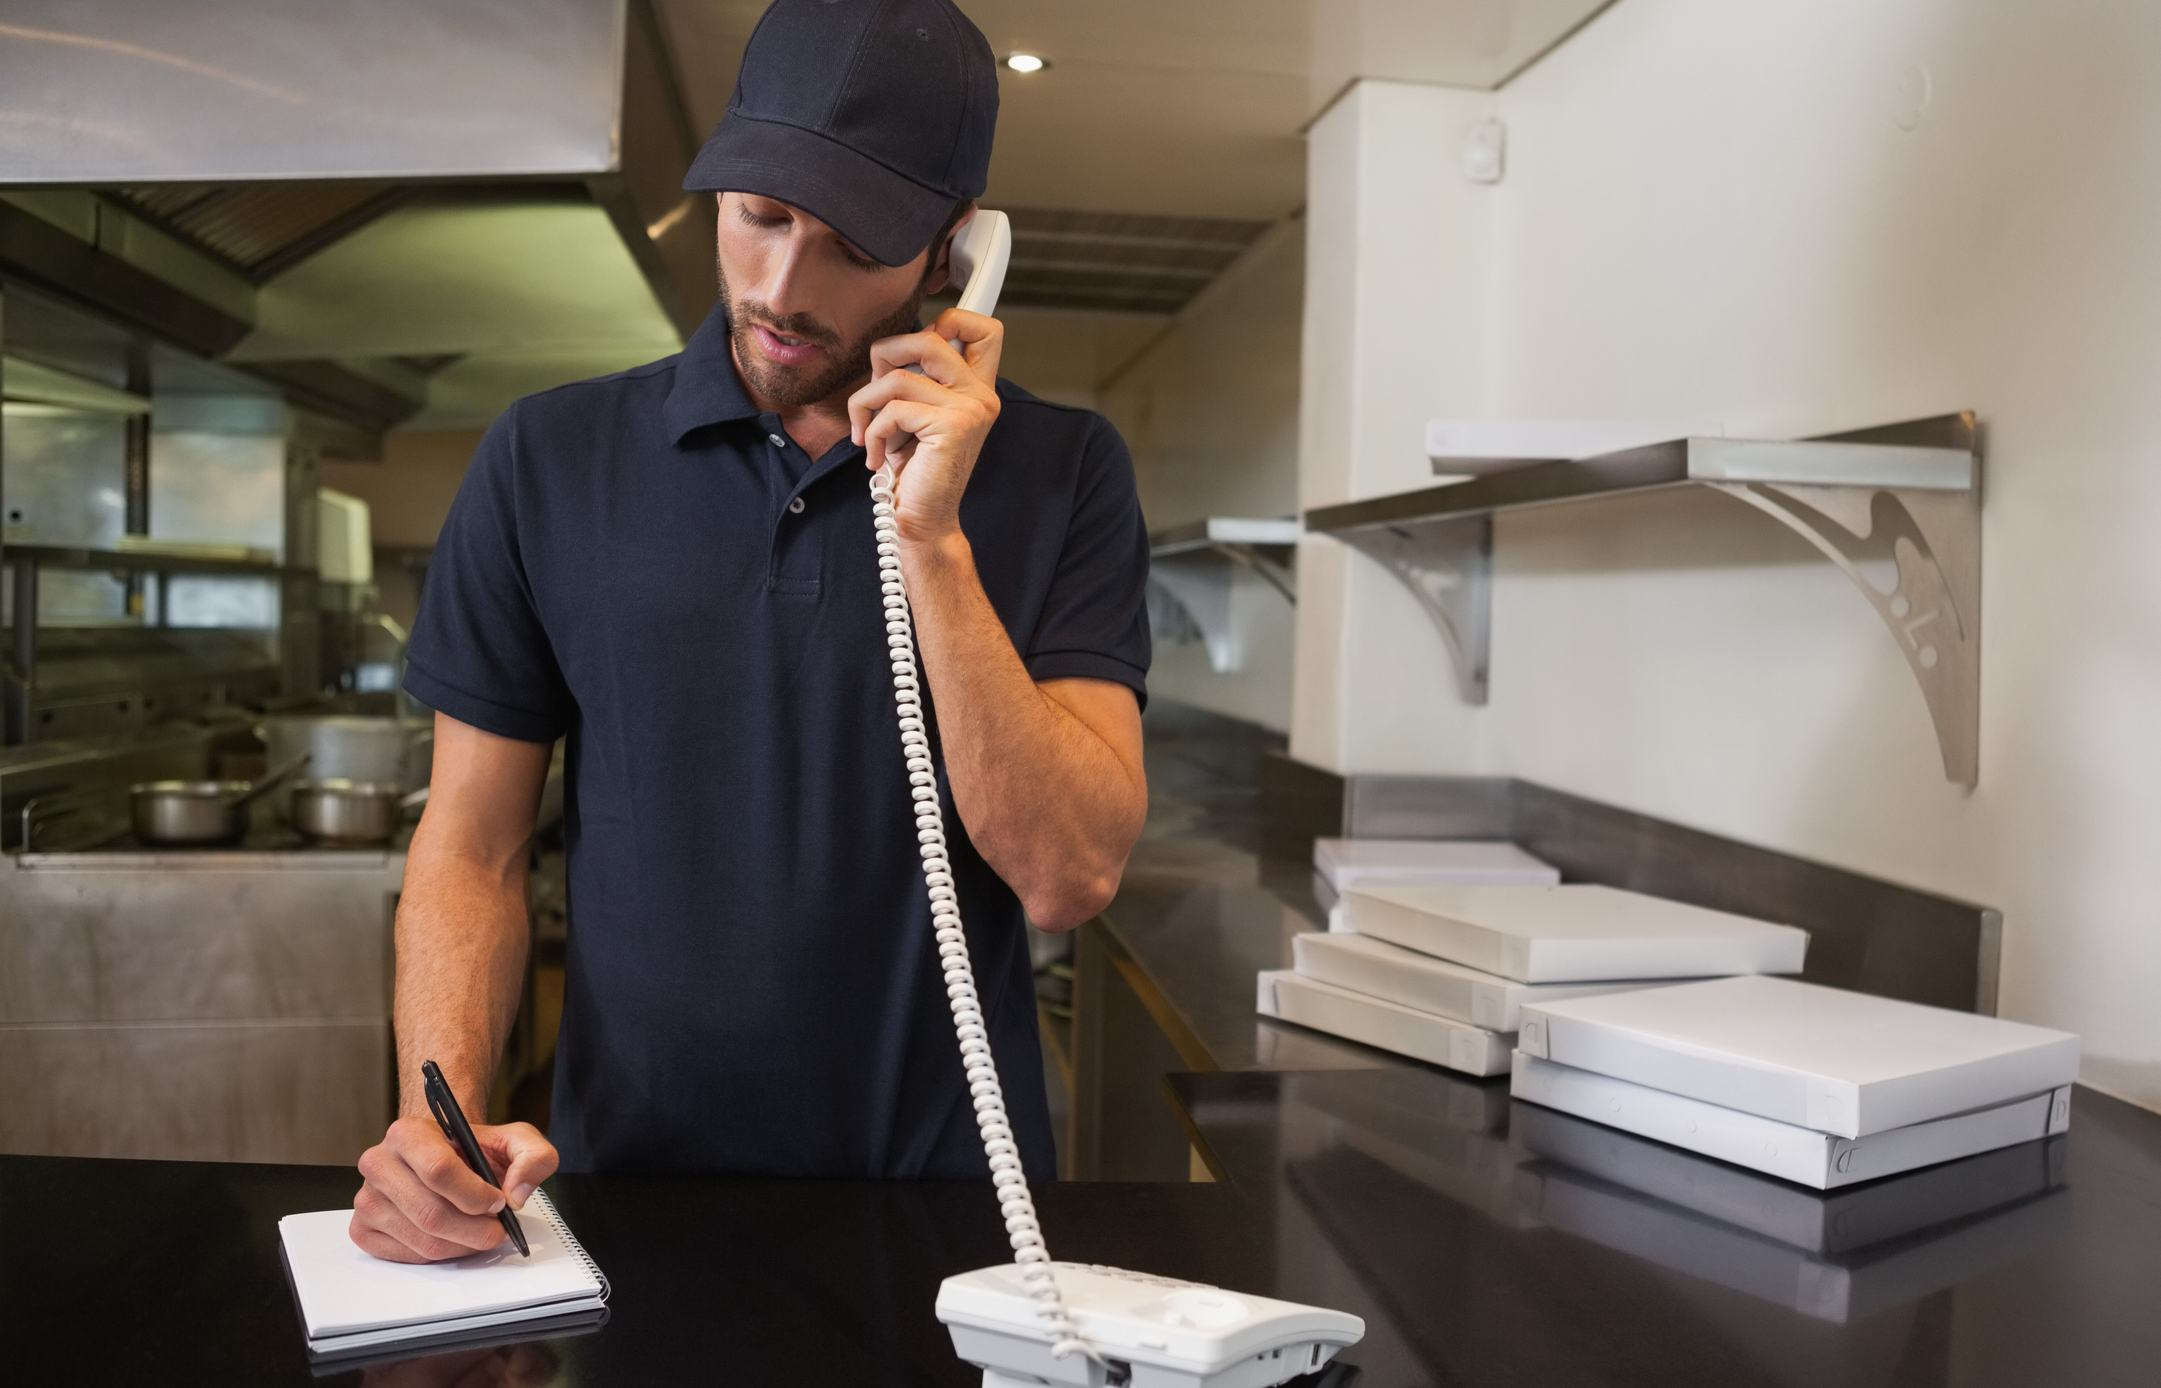 Pizza Delivery phone call